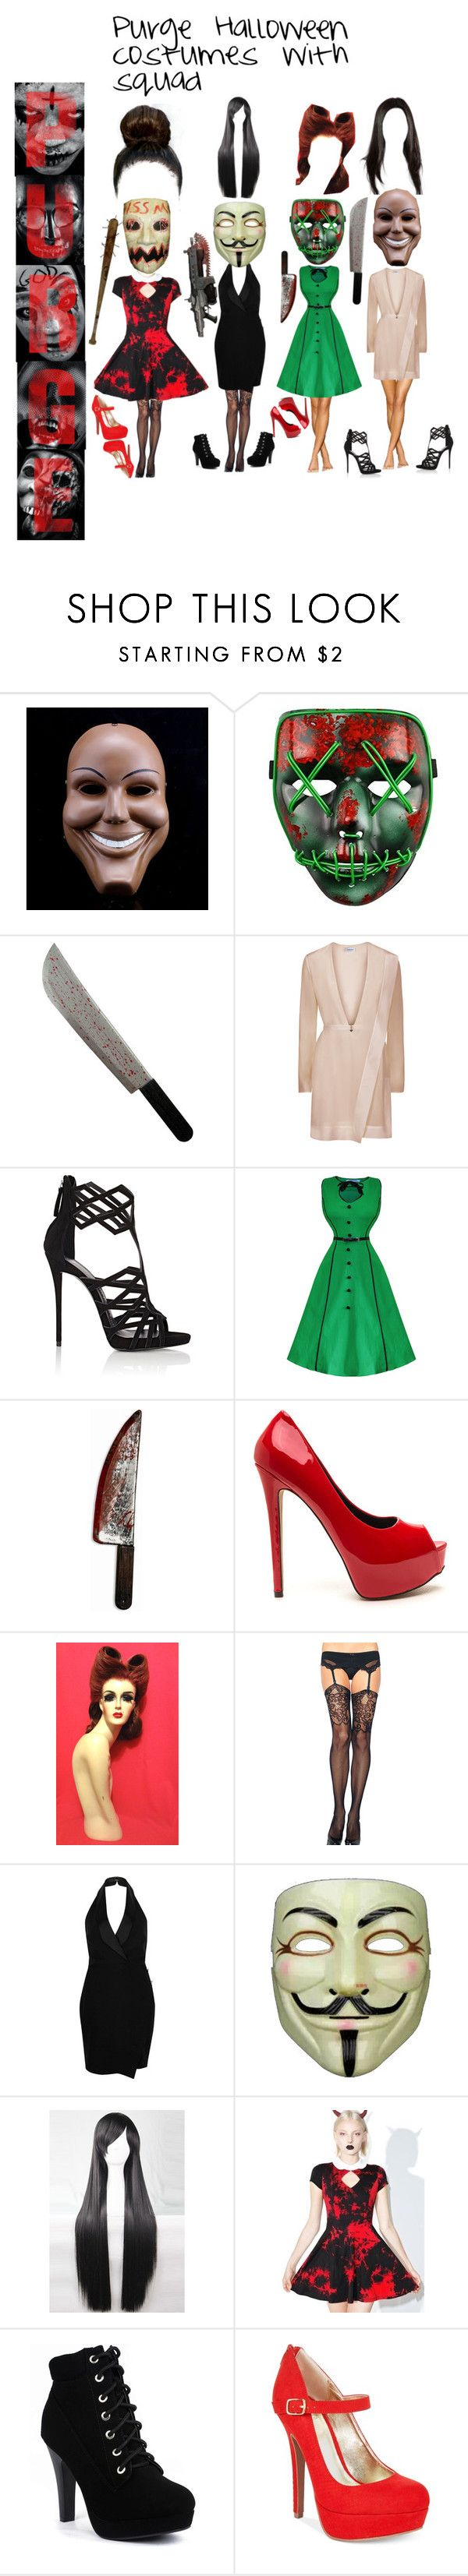 """""""Purge Halloween costume with squad"""" by keaira13 ❤ liked on Polyvore featuring Giuseppe Zanotti, Chicnova Fashion, River Island, Killstar and Material Girl"""